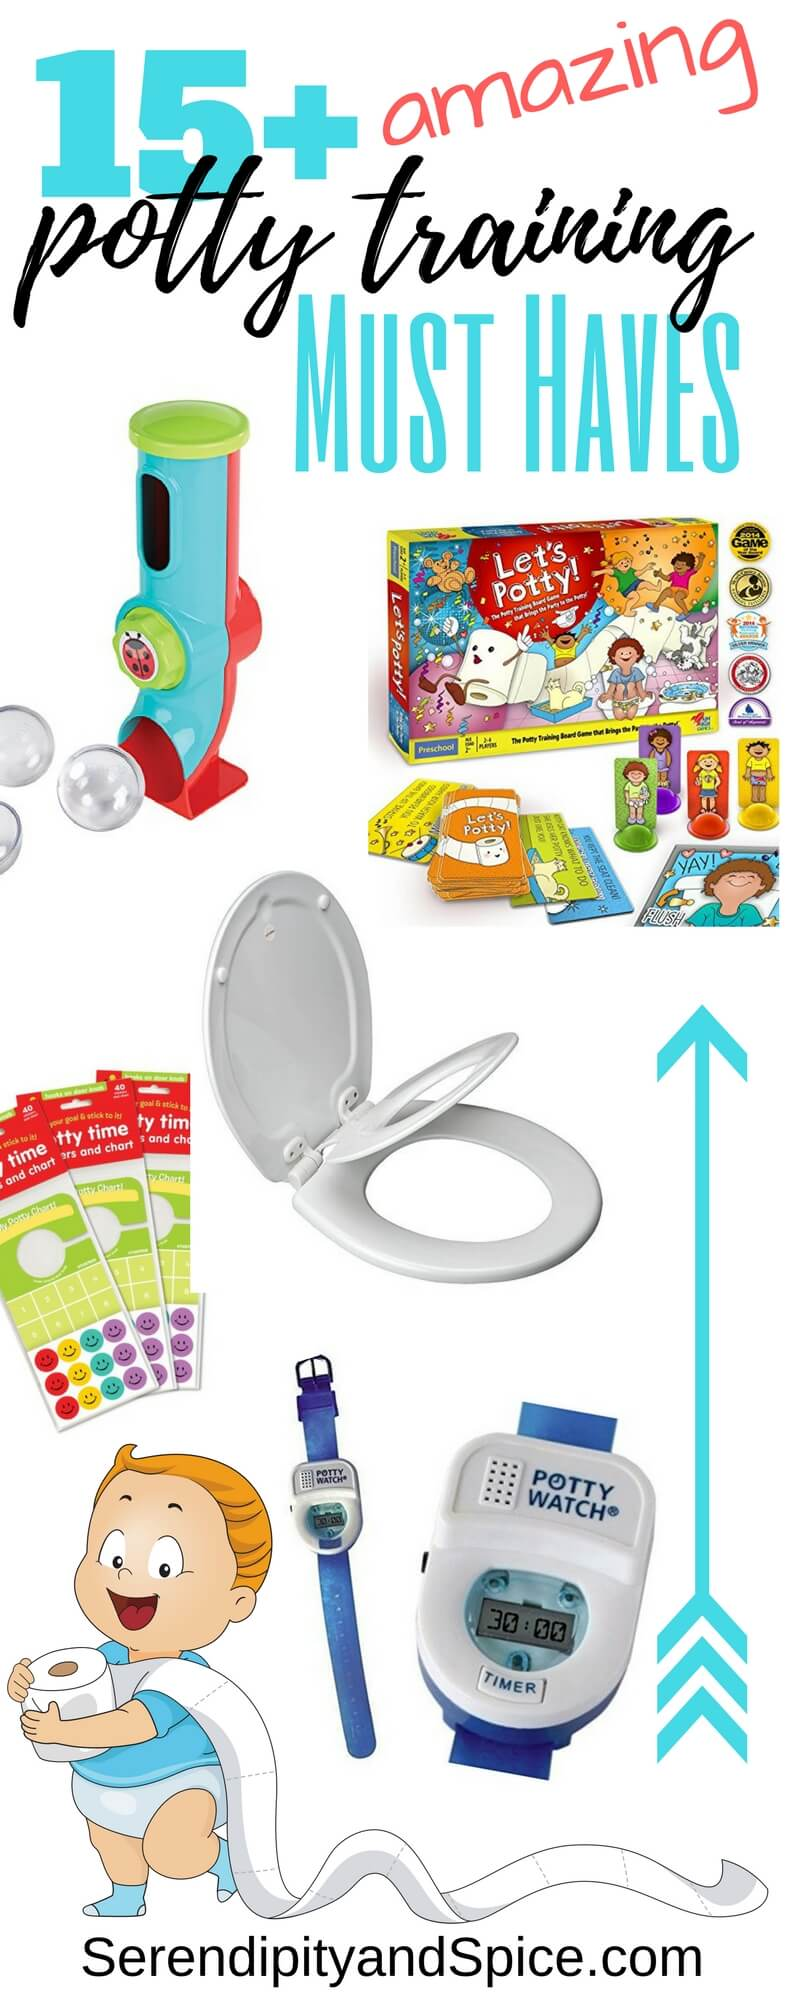 potty training must haves